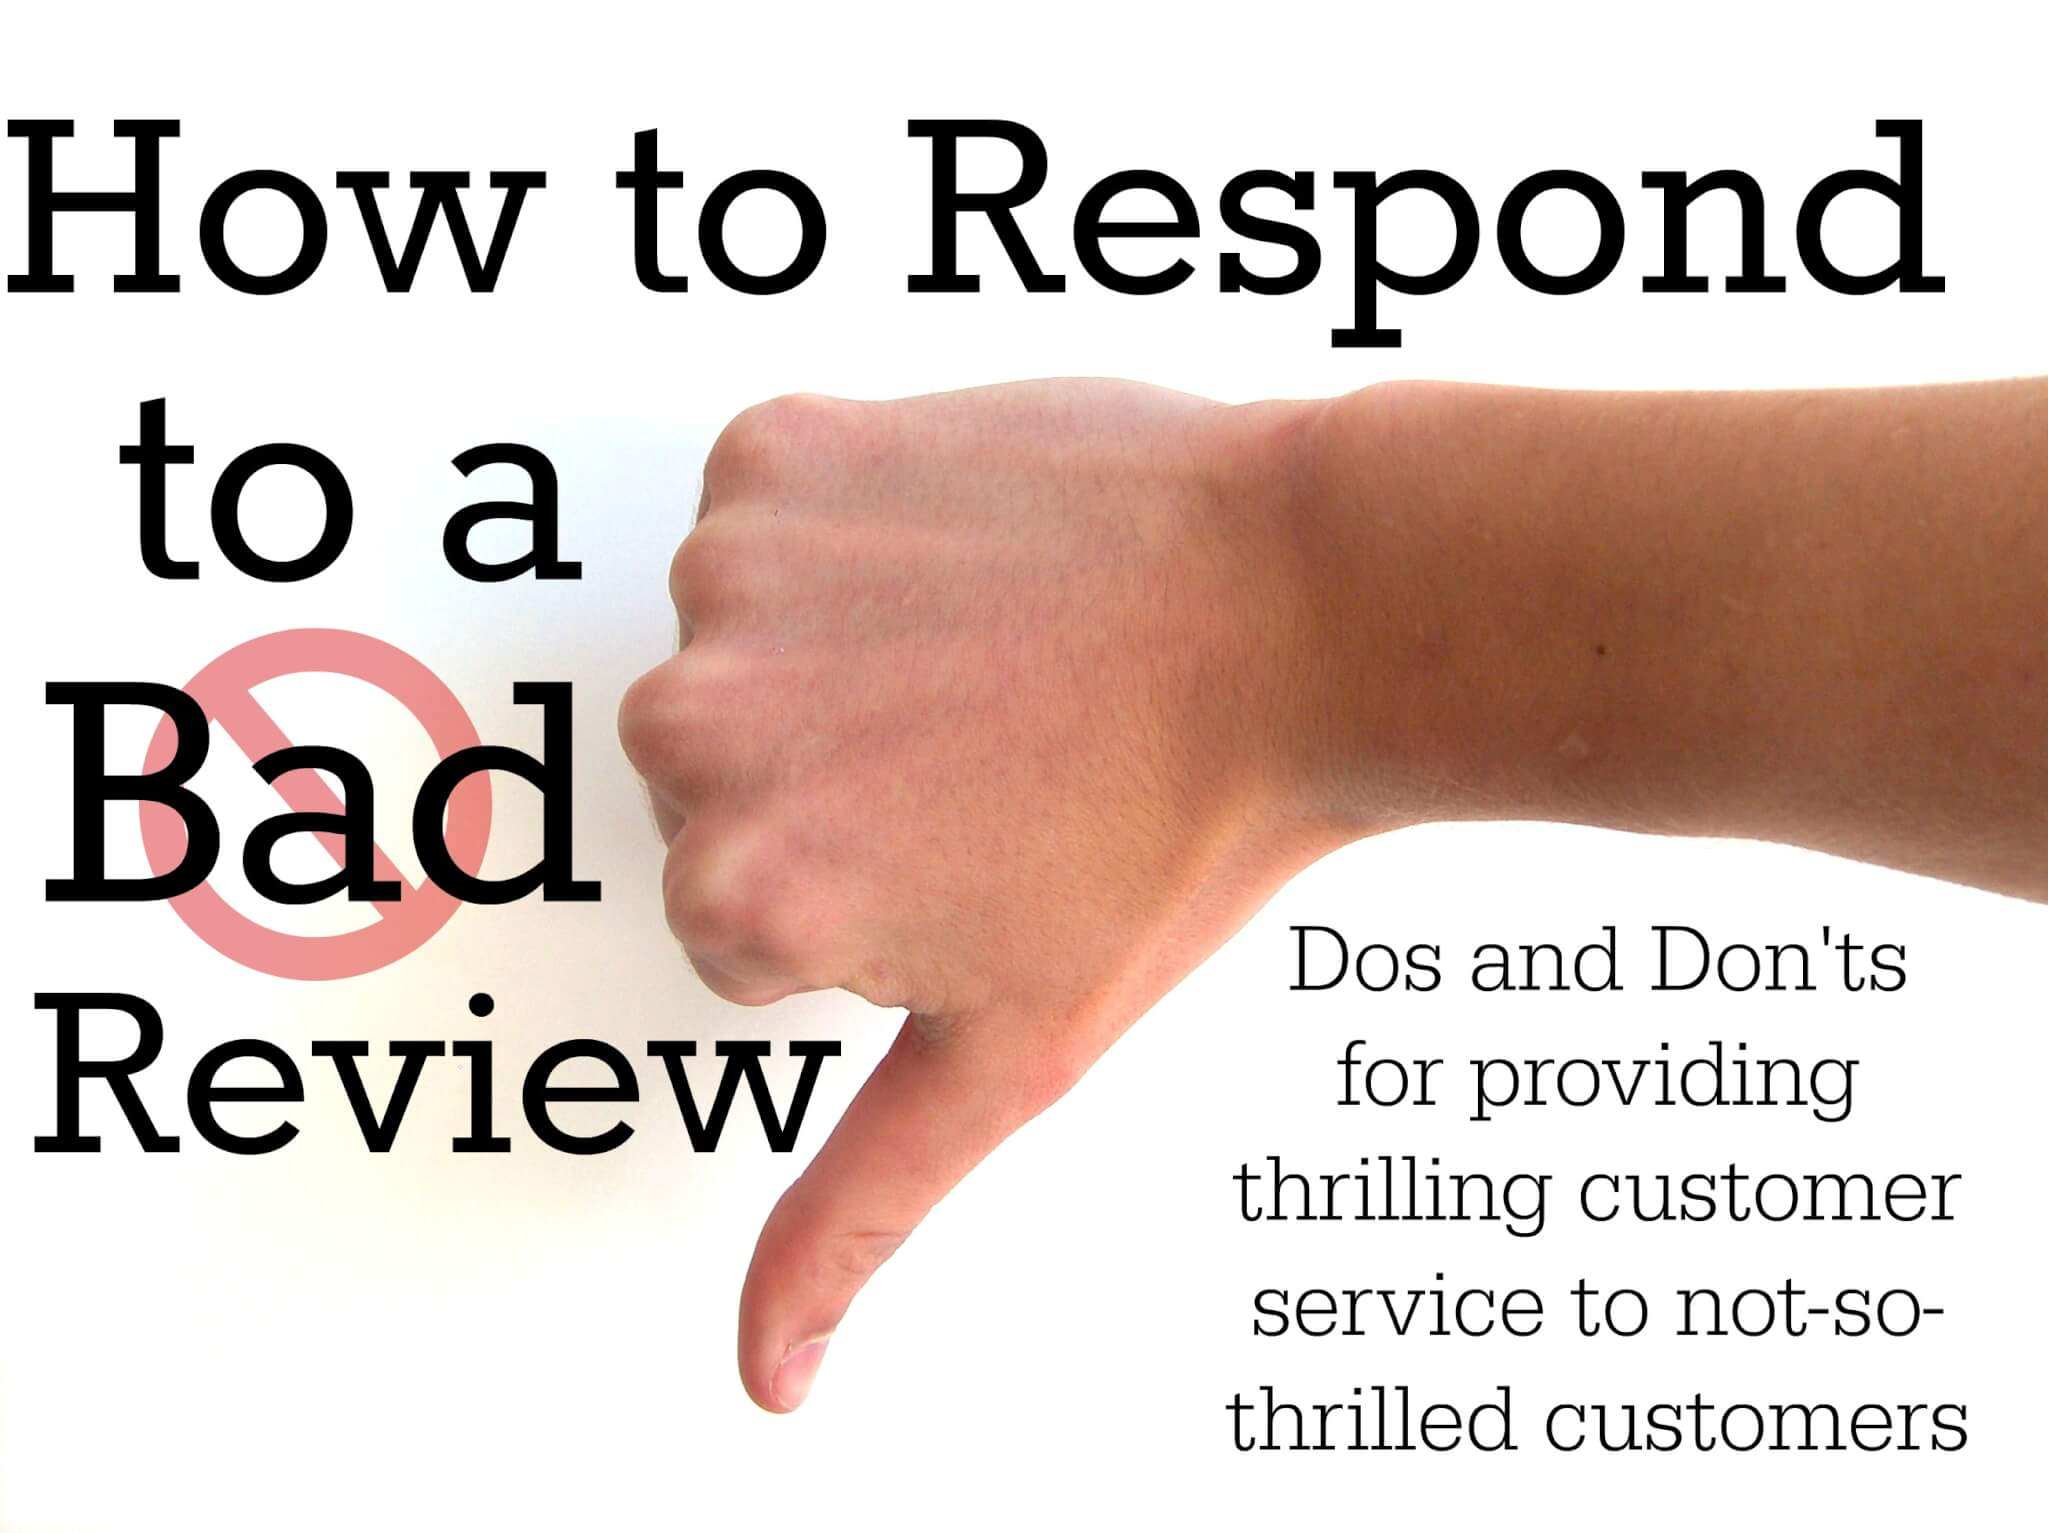 How To Respond To A Bad Review